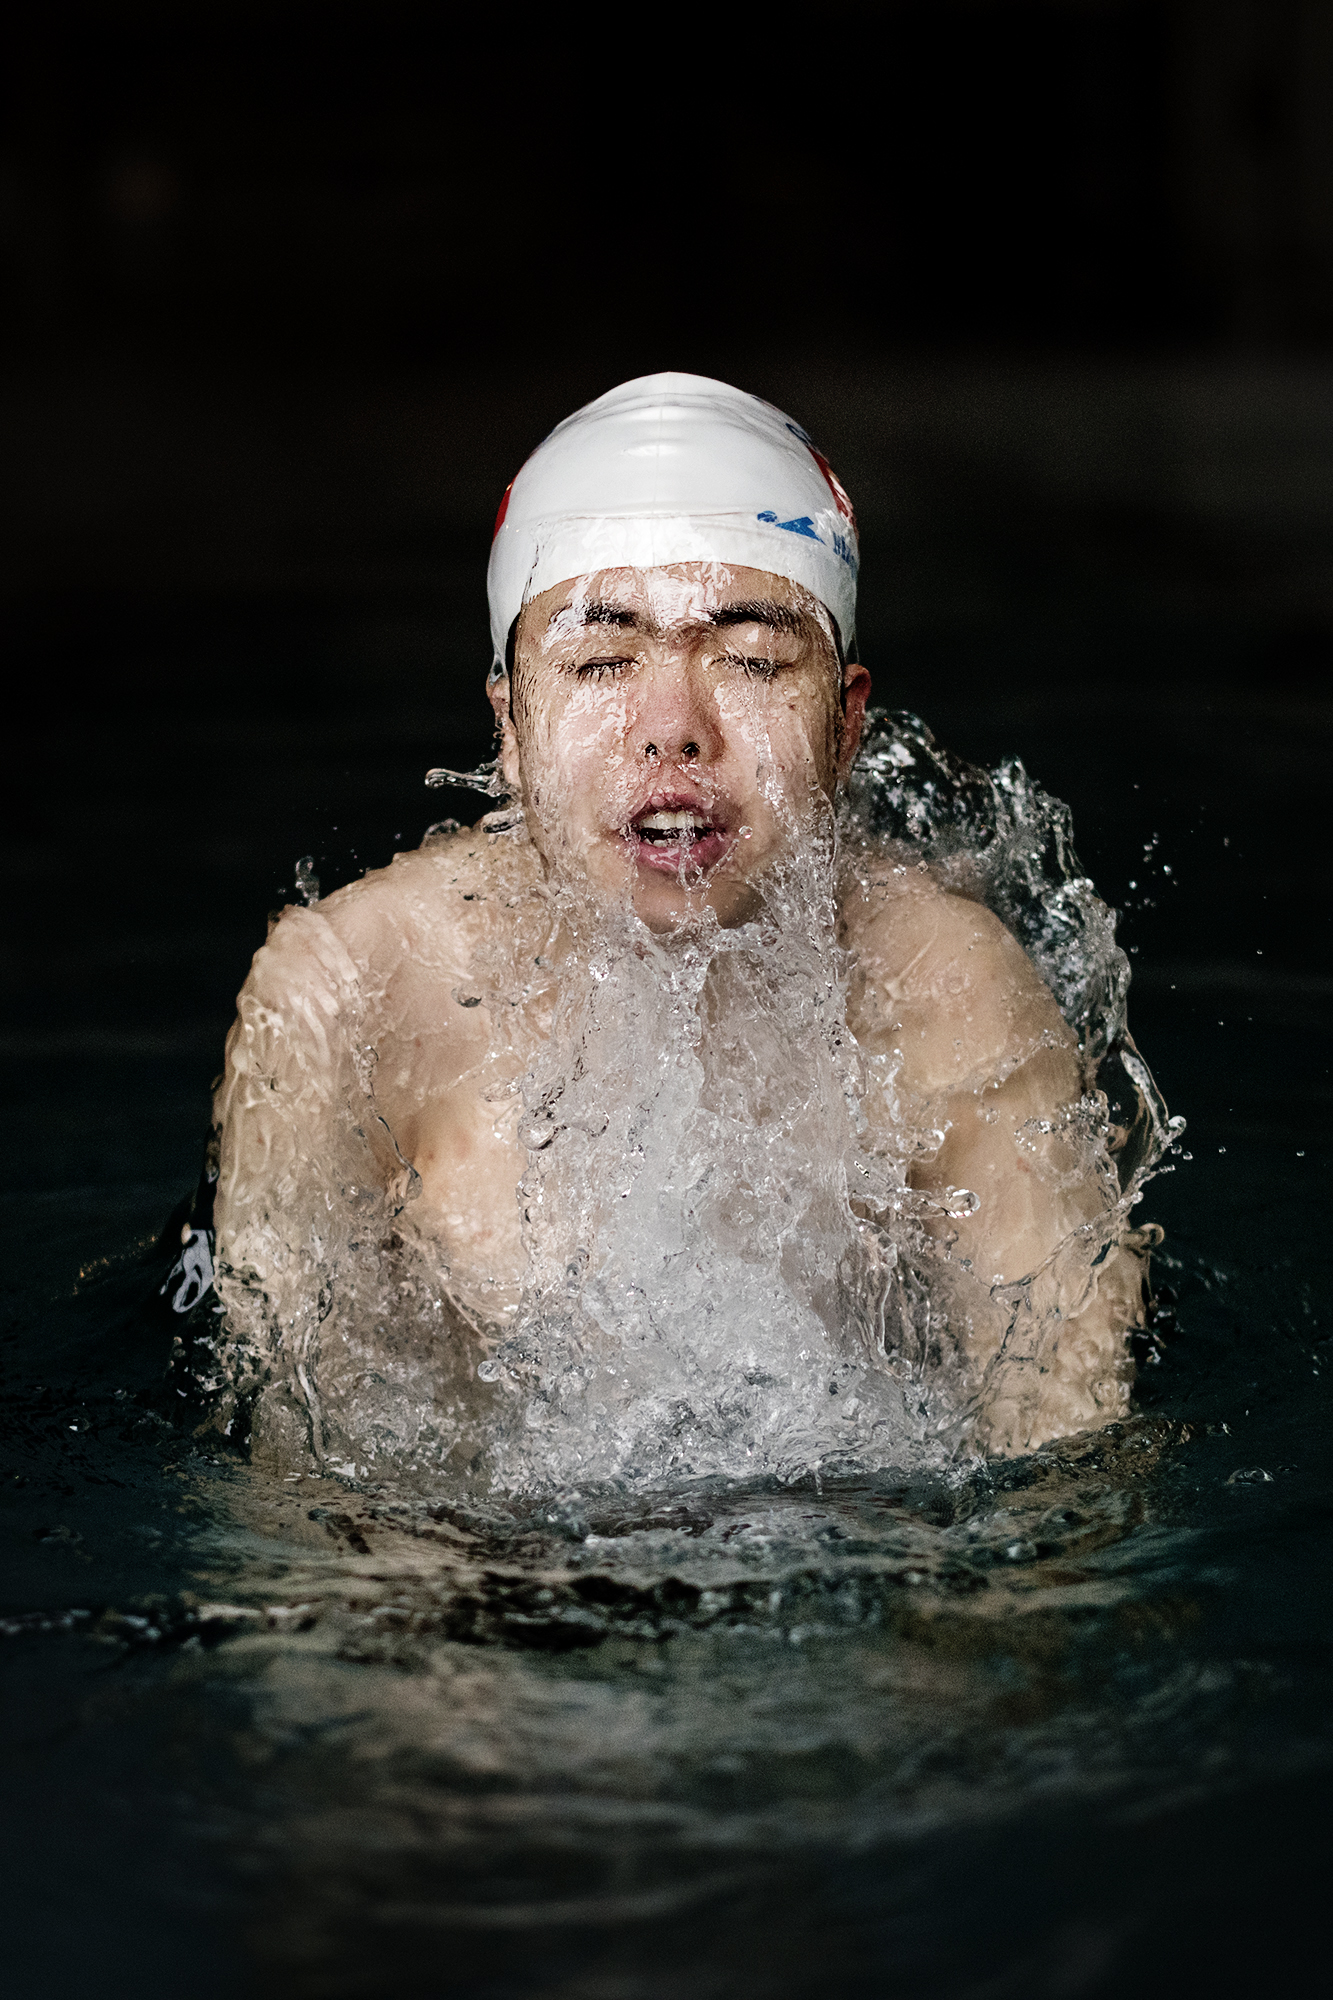 Splash! He gasps for air before he let the water consume him again. With great power he pushes his feet against the edge of the pool. Seven seconds later, he is on the other side. Zhang Yi Cheng (18) has attended South of the Clouds Swimming Club for five years.